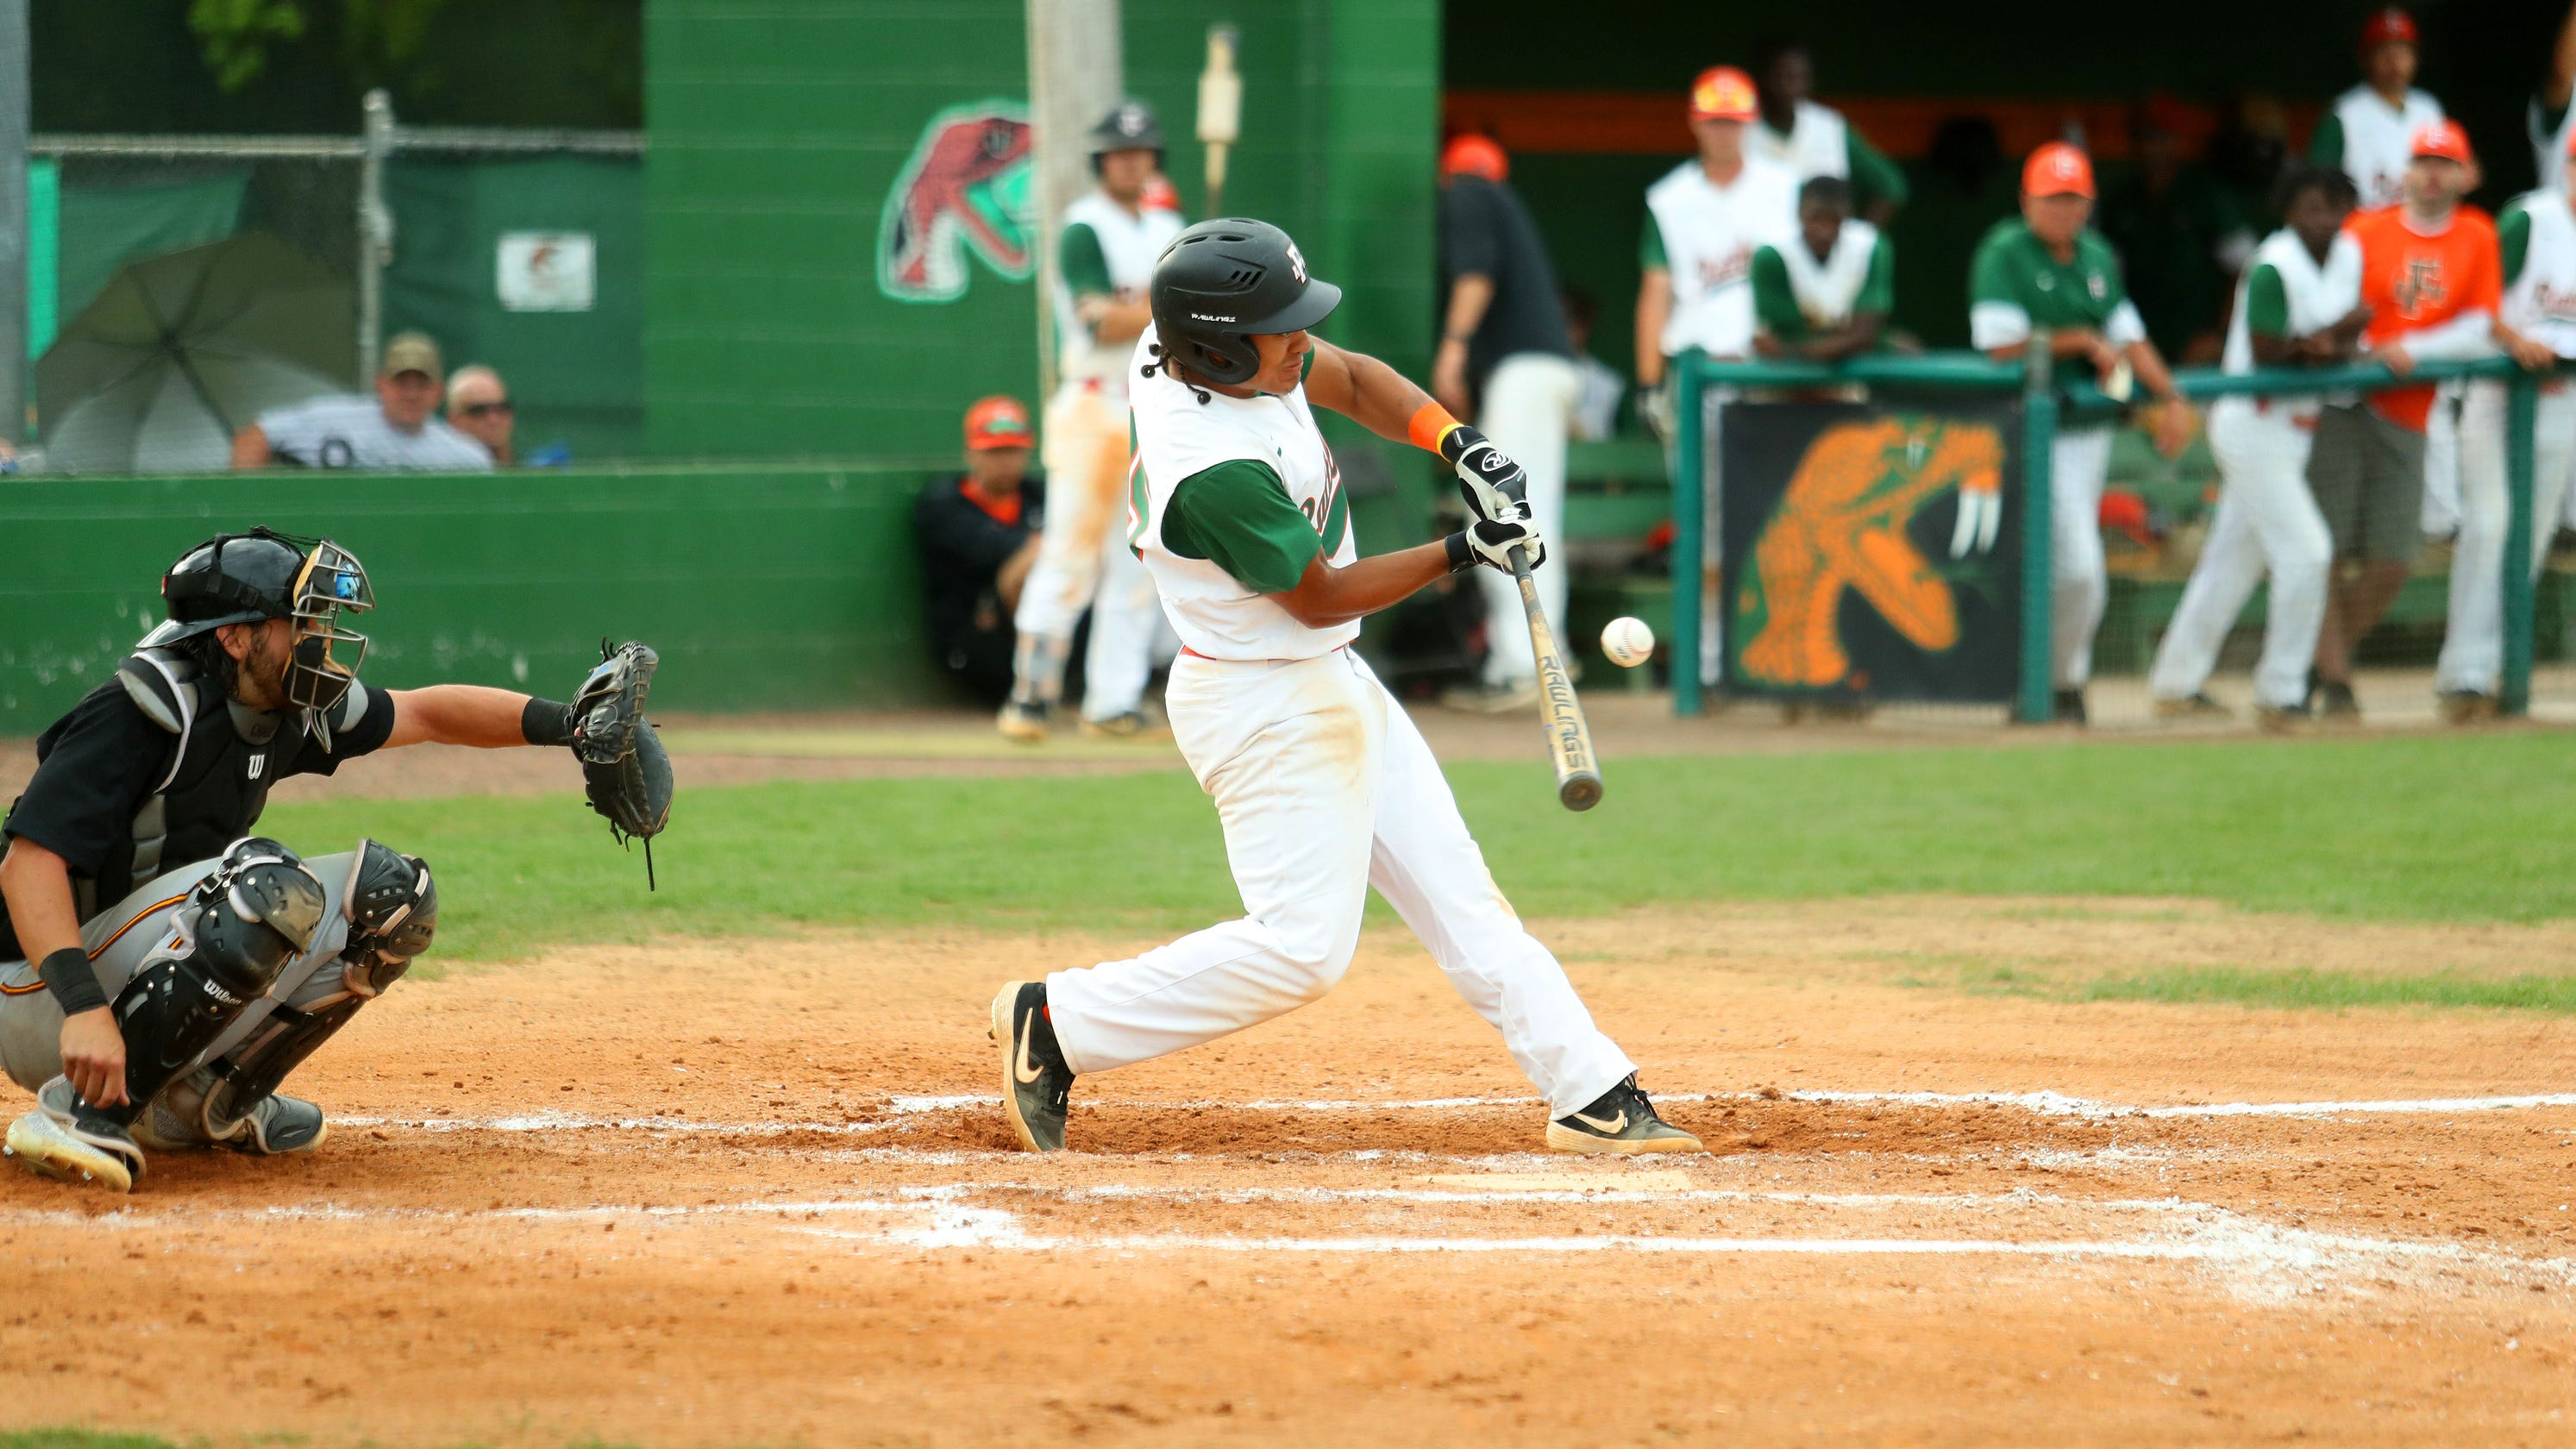 FAMU rides wave of confidence into MEAC Baseball Tournament